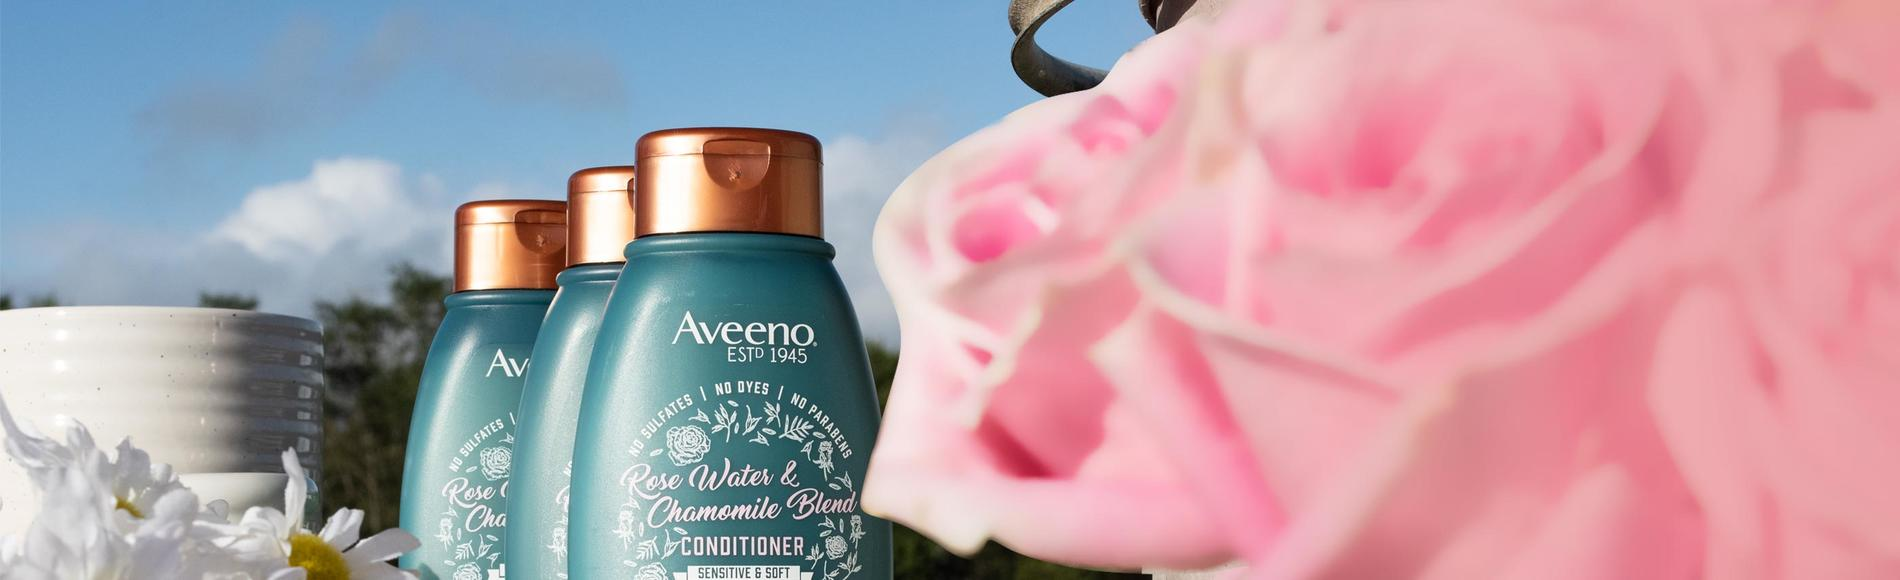 rose water and chamomile shampoo for soft hair from aveeno